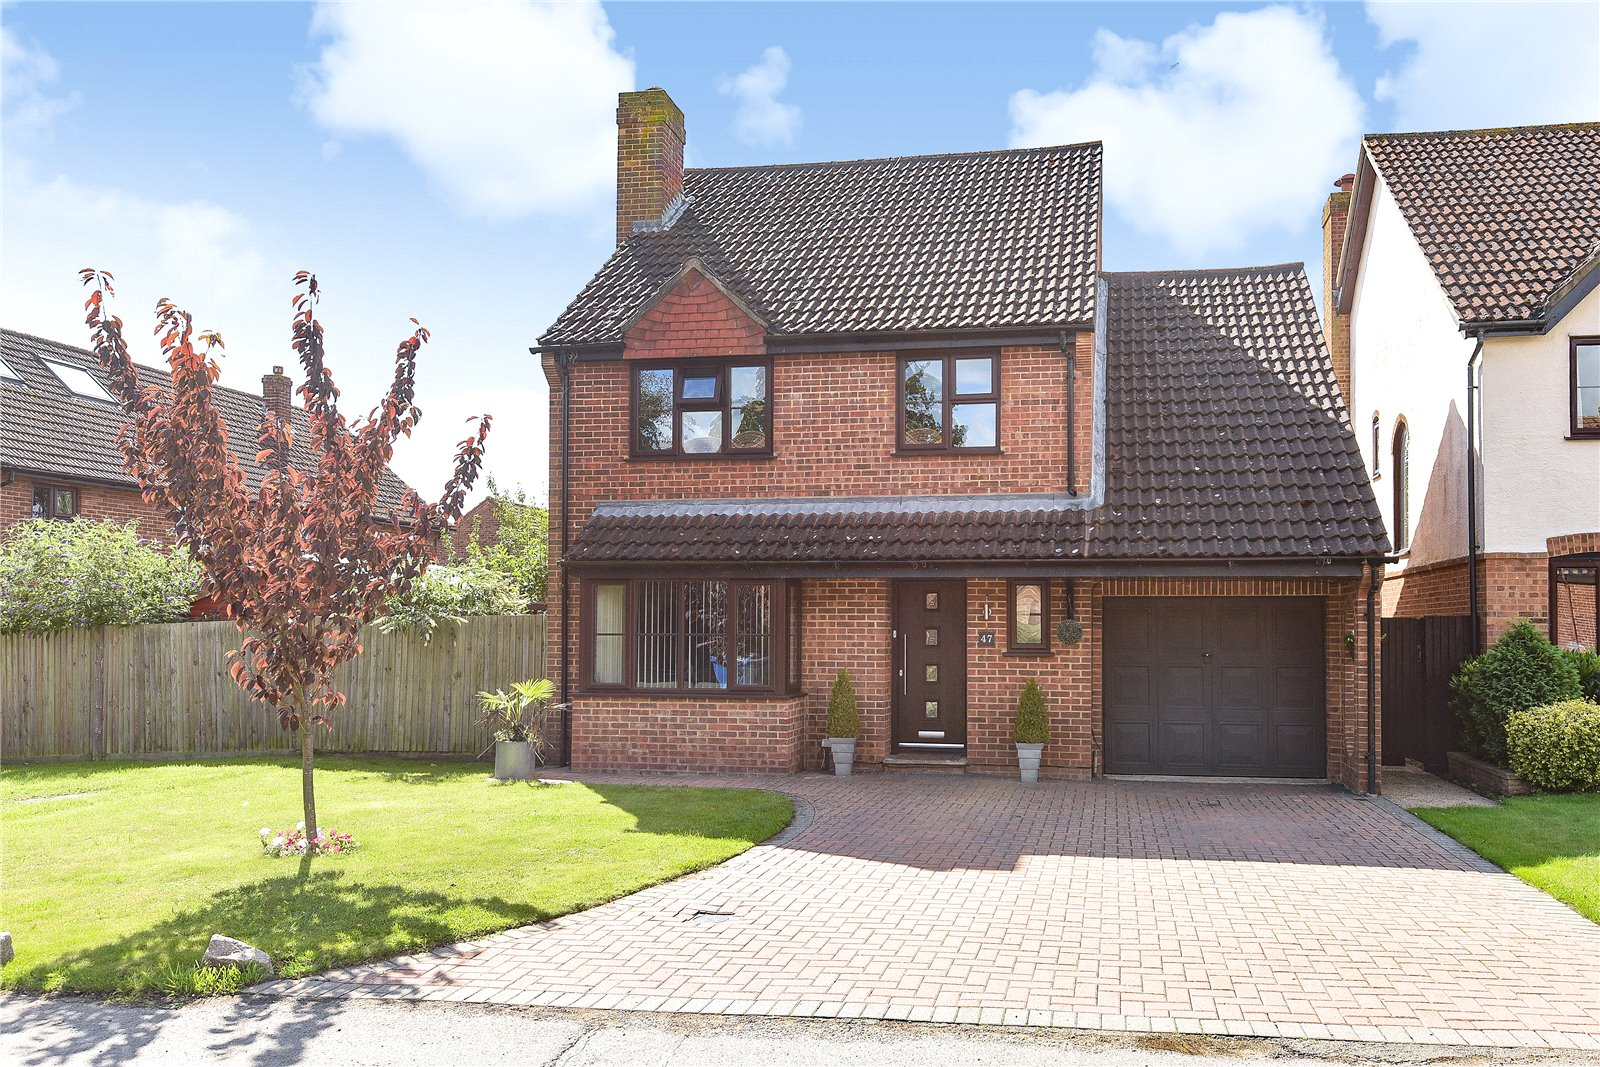 4 Bedrooms Detached House for sale in Heywood Avenue, Maidenhead, Berkshire, SL6